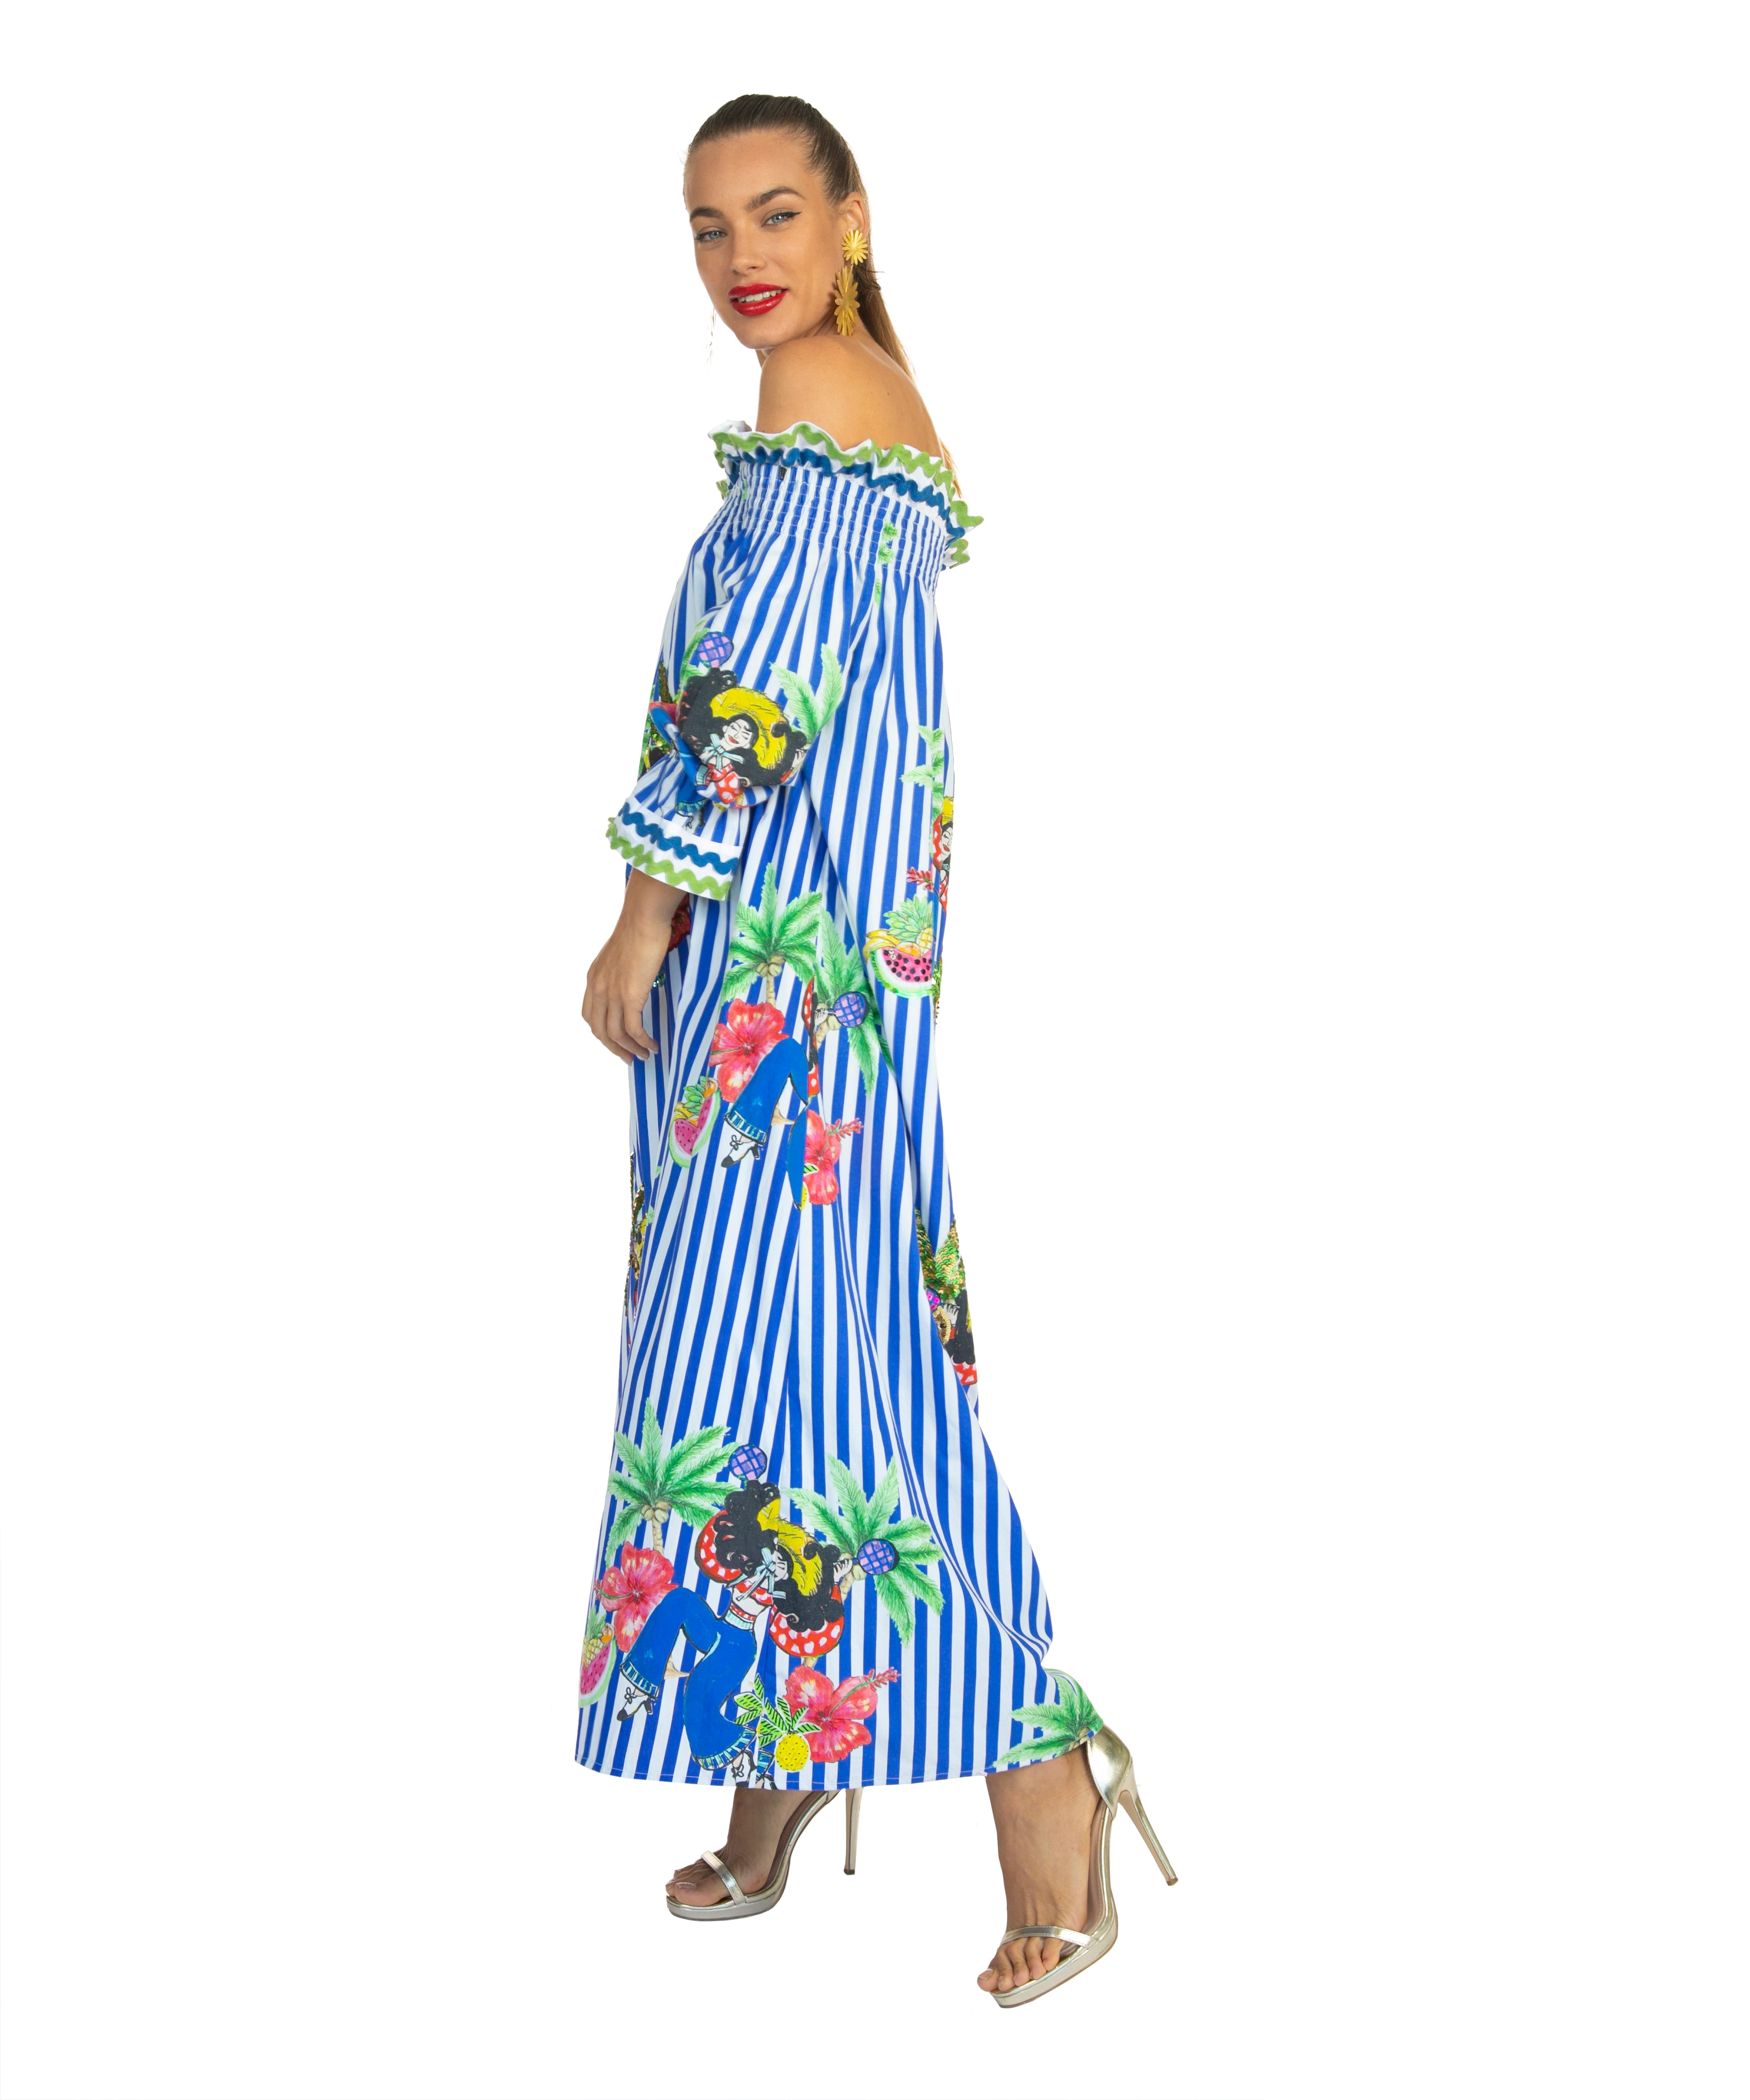 The Blue and White Striped Salsa OTS Dress by Bonita Collective